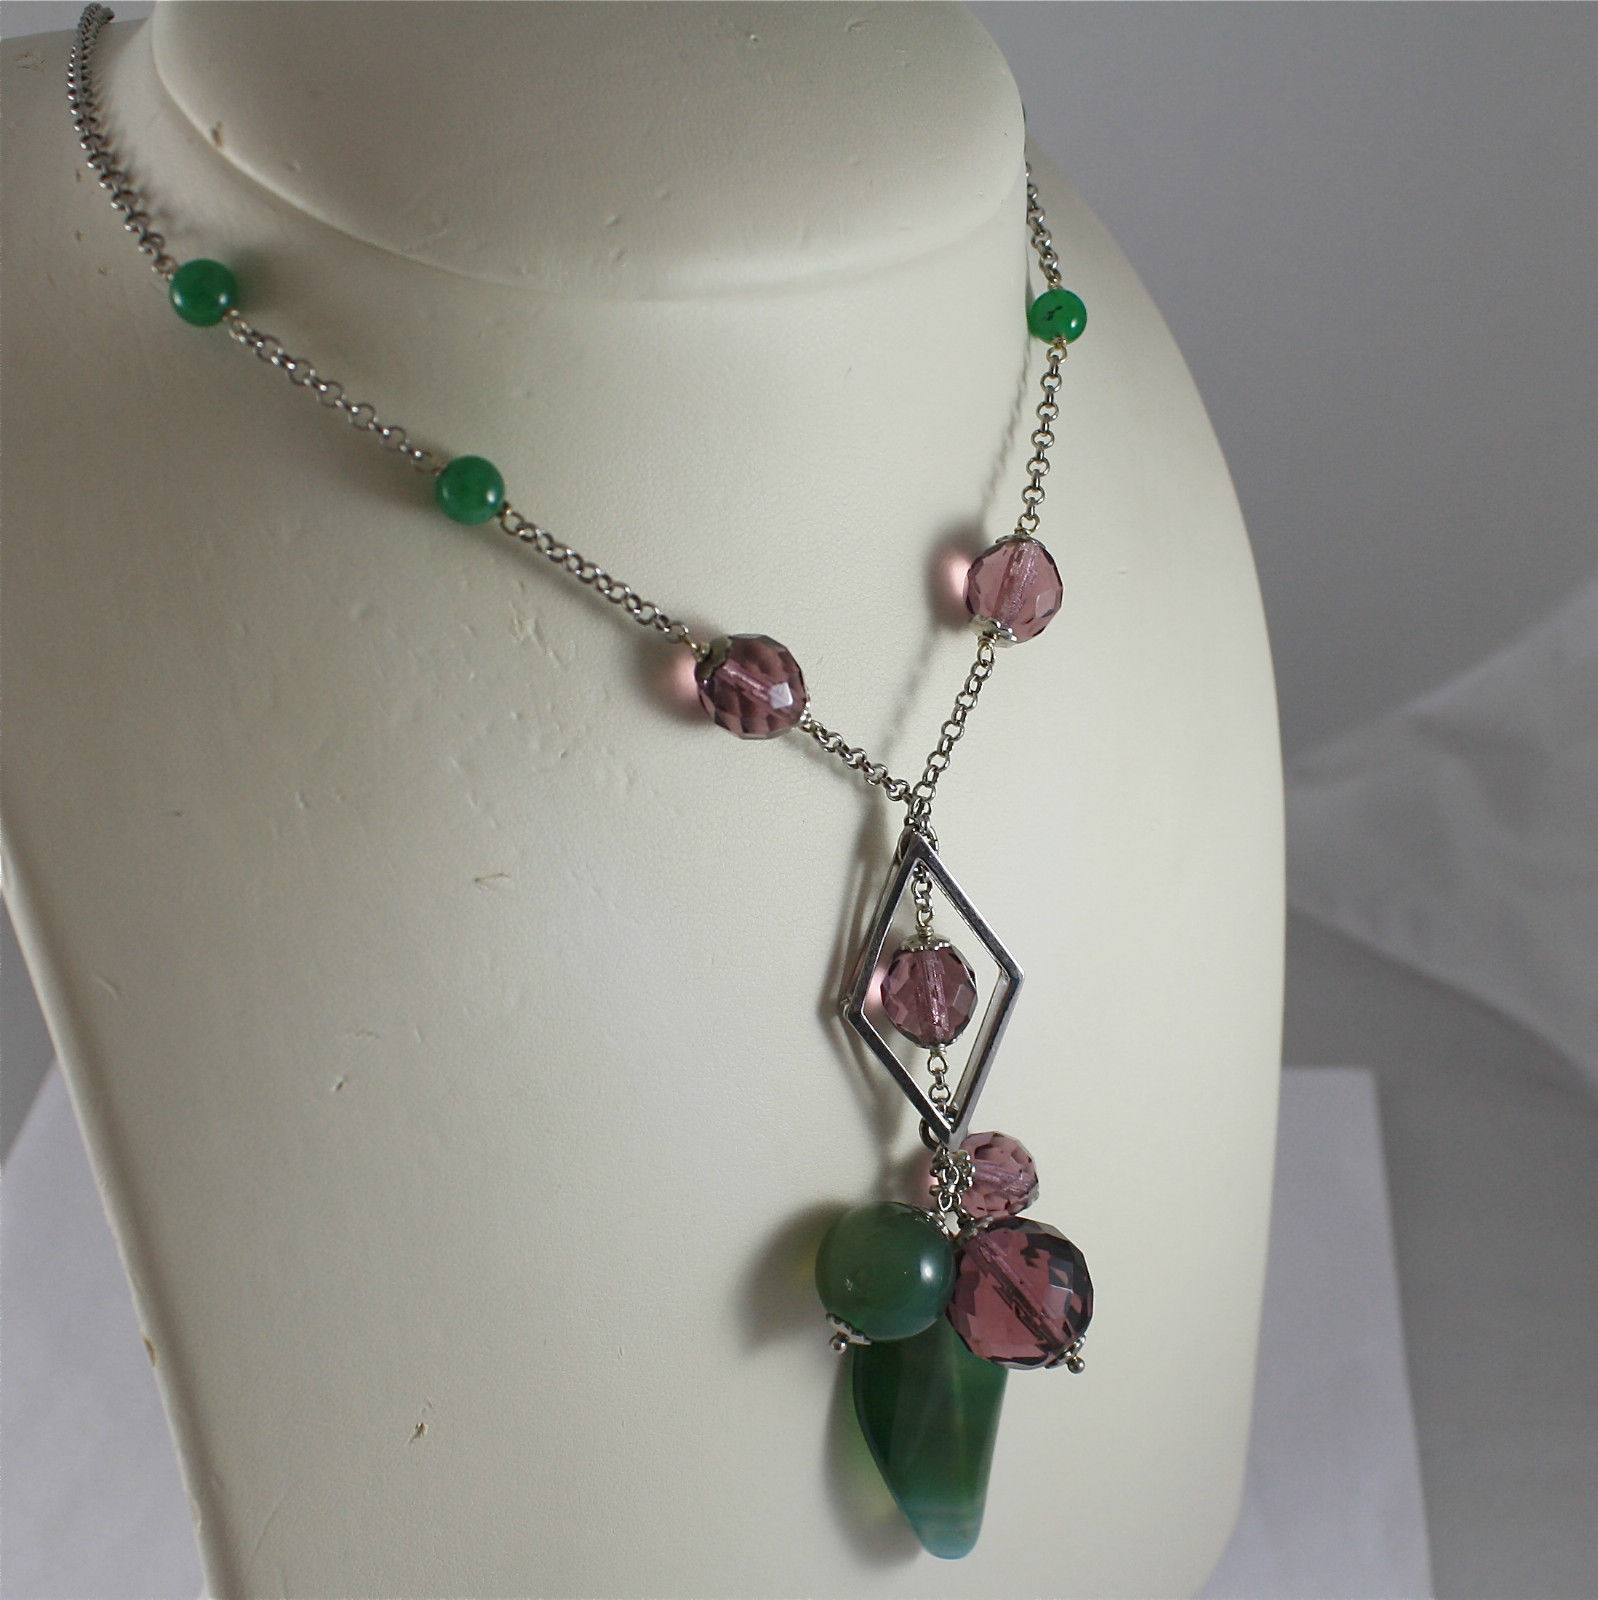 .925 RHODIUM SILVER NECKLACE, GREEN JADE AND FACETED PURPLE CRYSTALS.